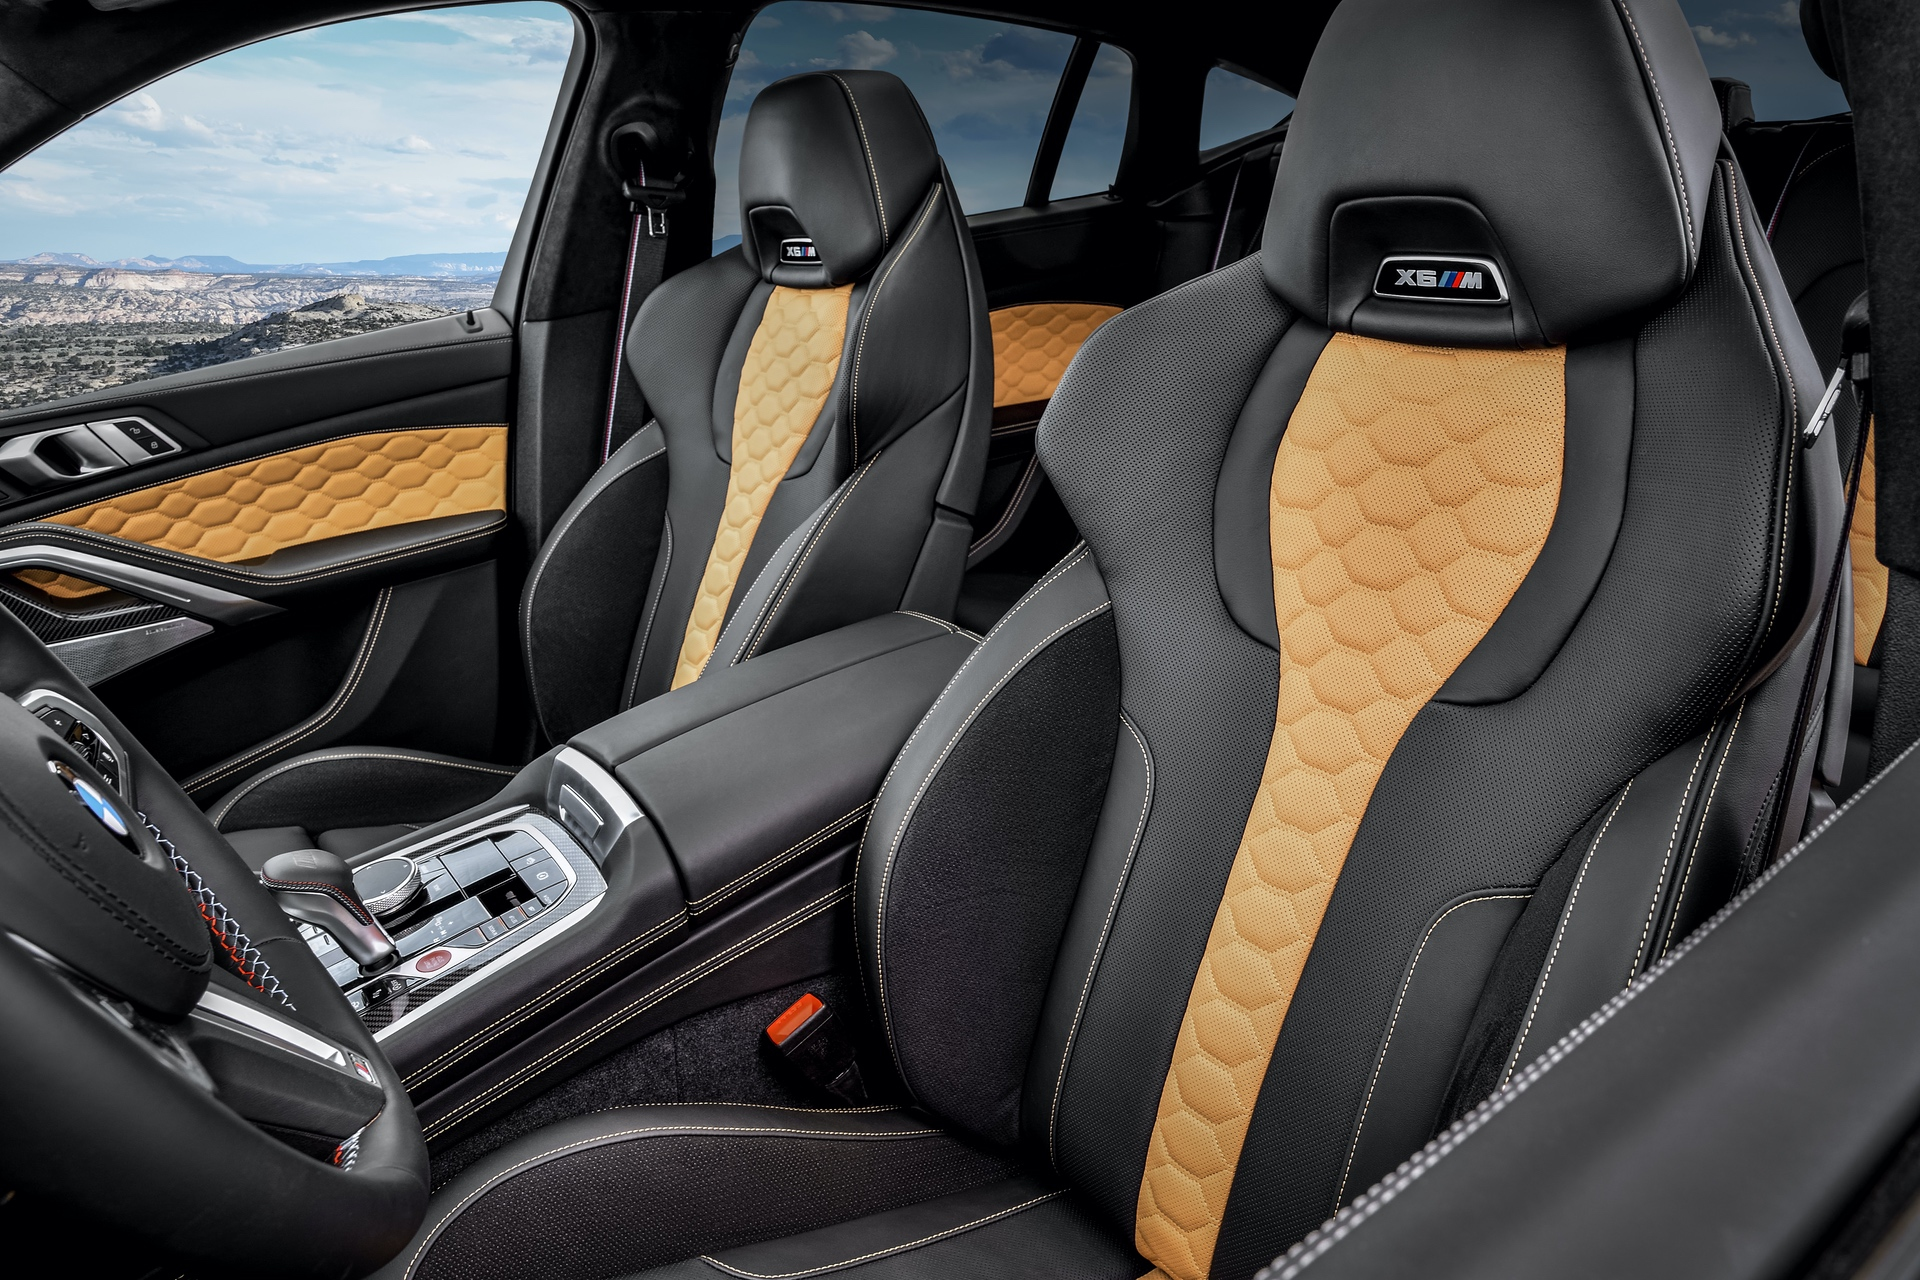 Bmw X6 M Makes The Wardsauto S 10 Best Interiors For 2020